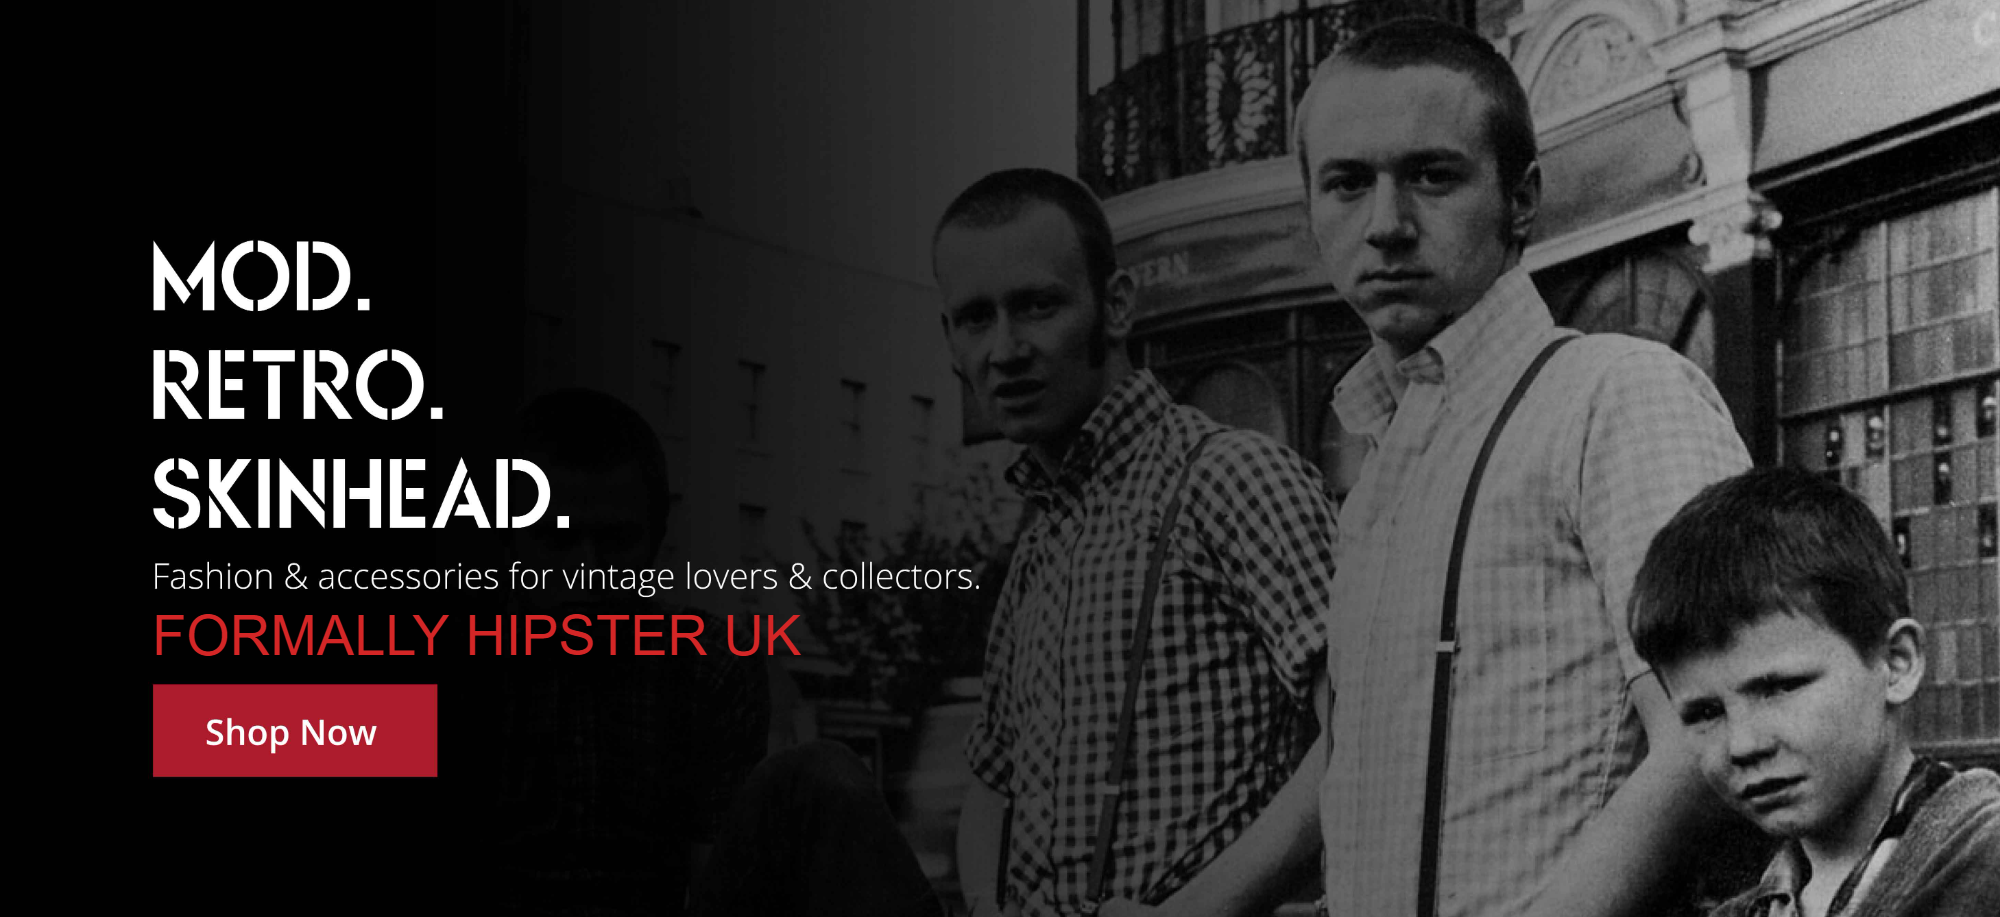 Shop mod, retro & skinhead fashions